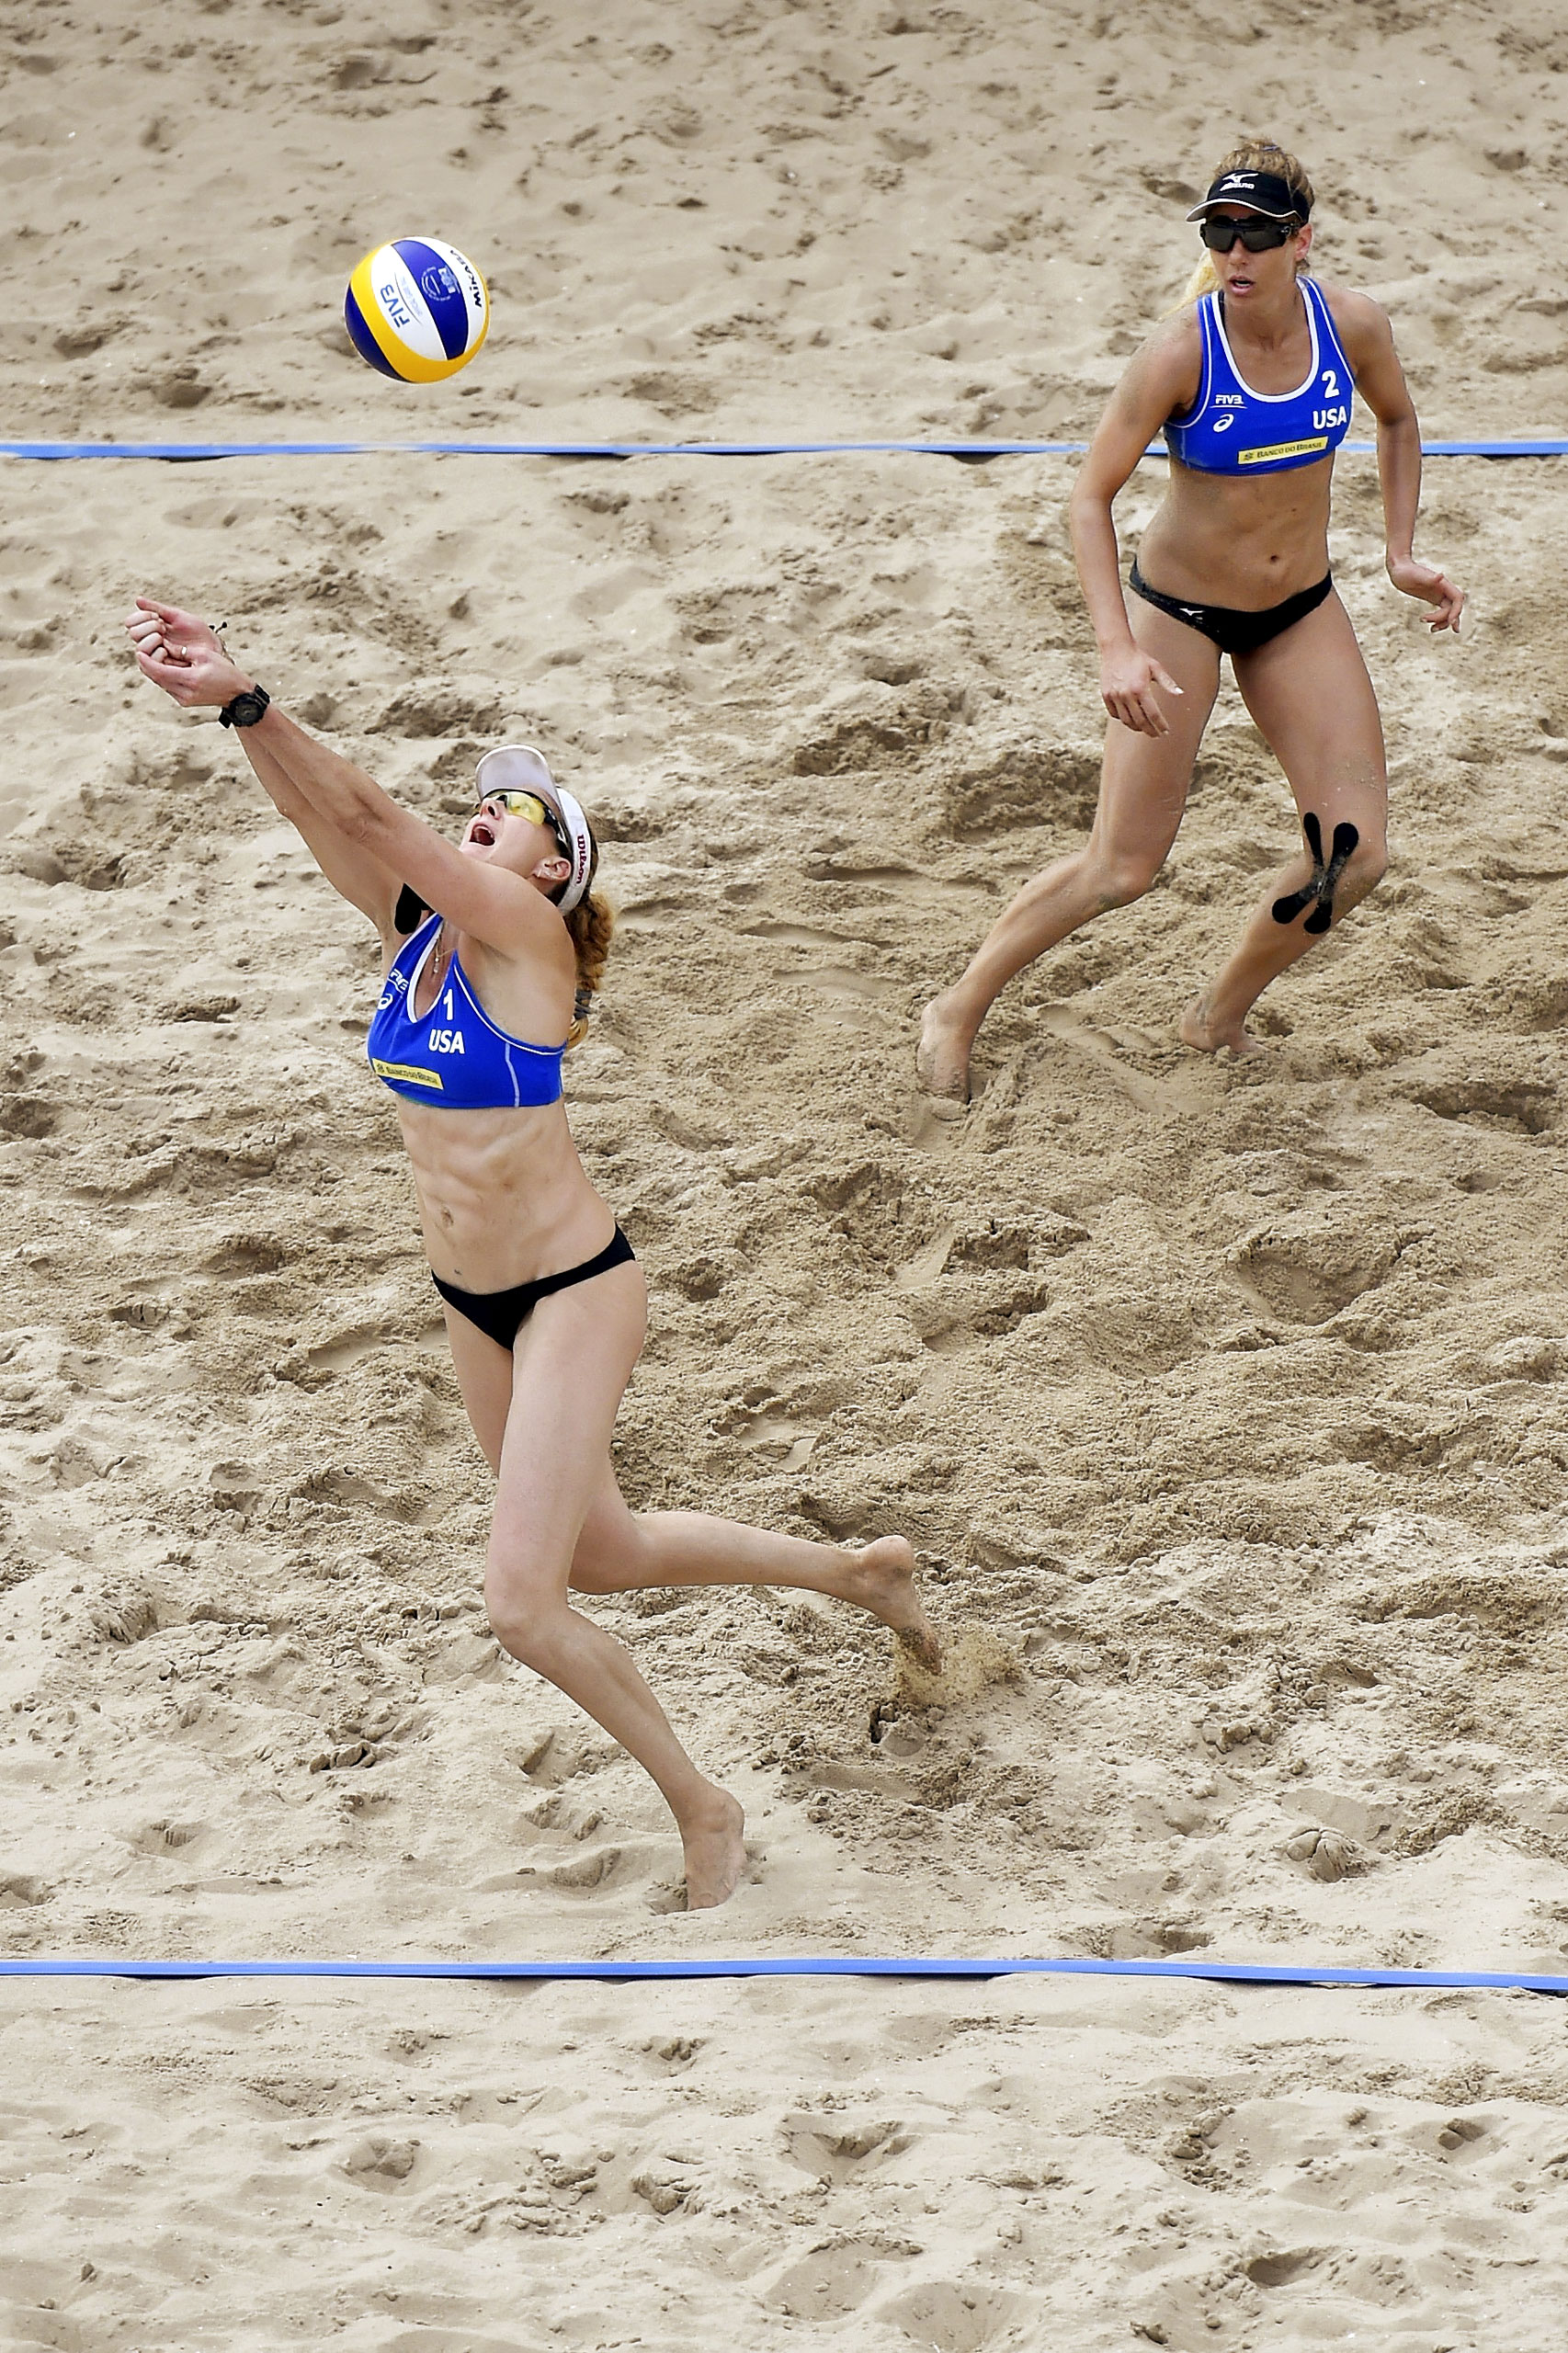 Kerri Walsh Jennings and April Ross of the United States during their semi-final match at the 2016 FIVB Rio Grand Slam in Rio de Janeiro, Brazil